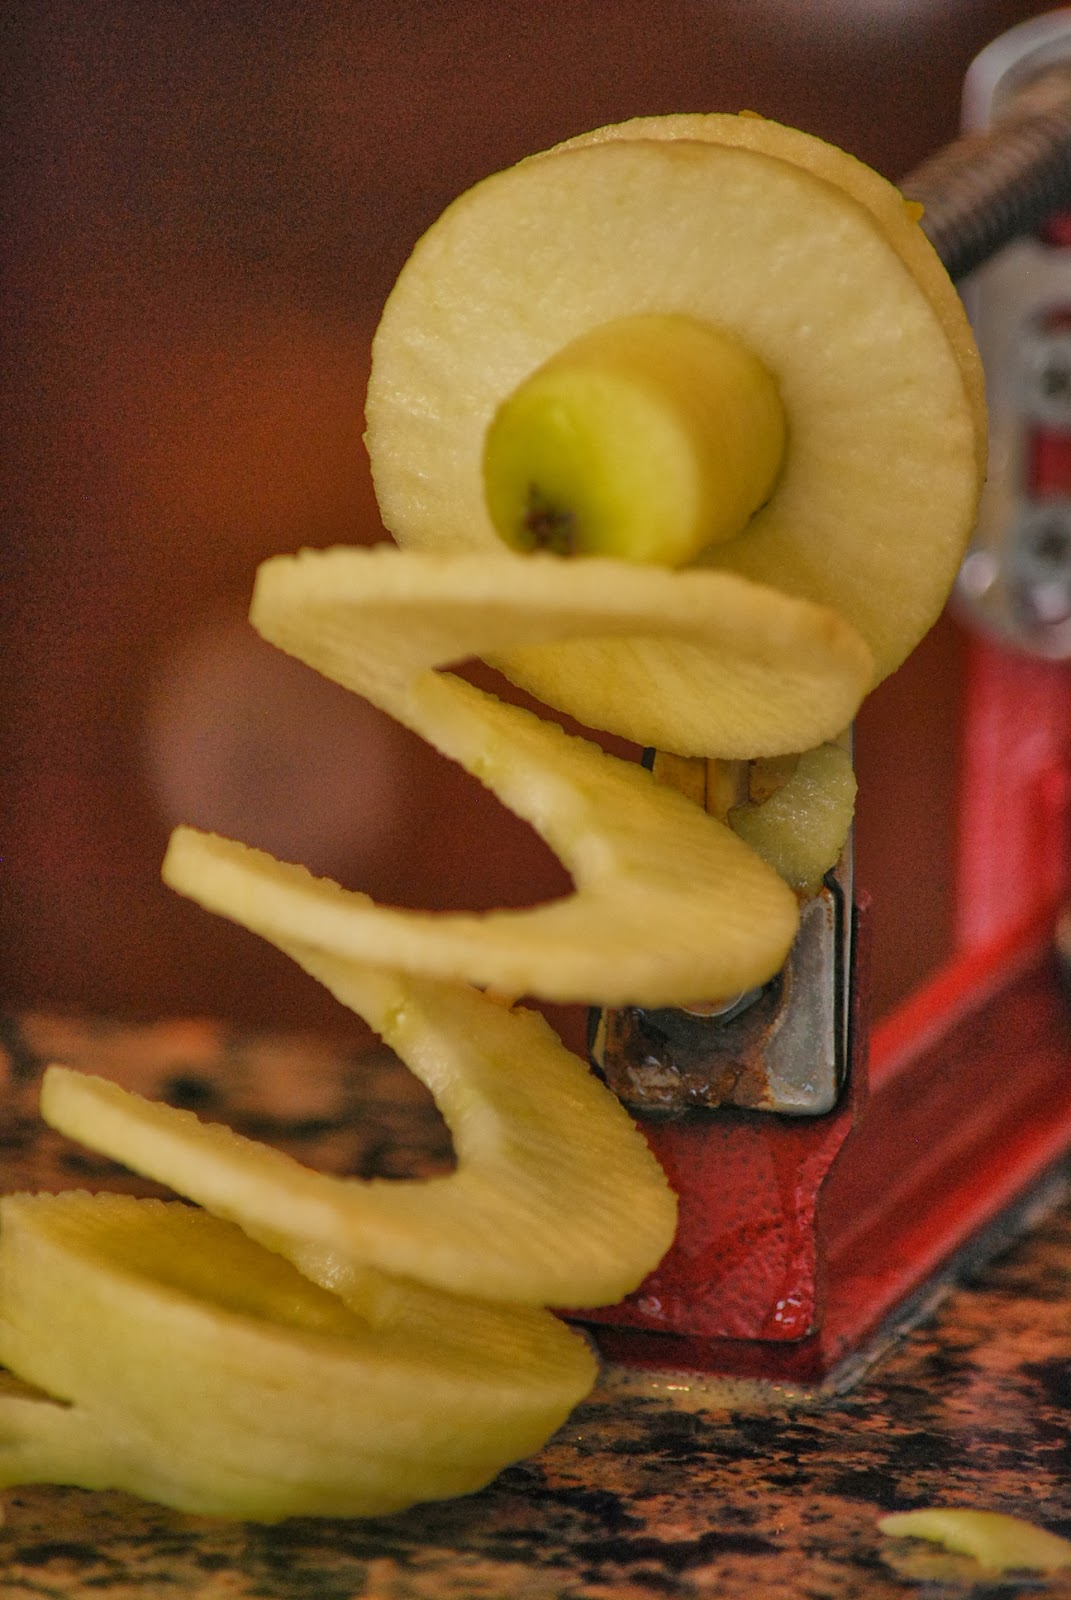 Slice Apples In Food Processor